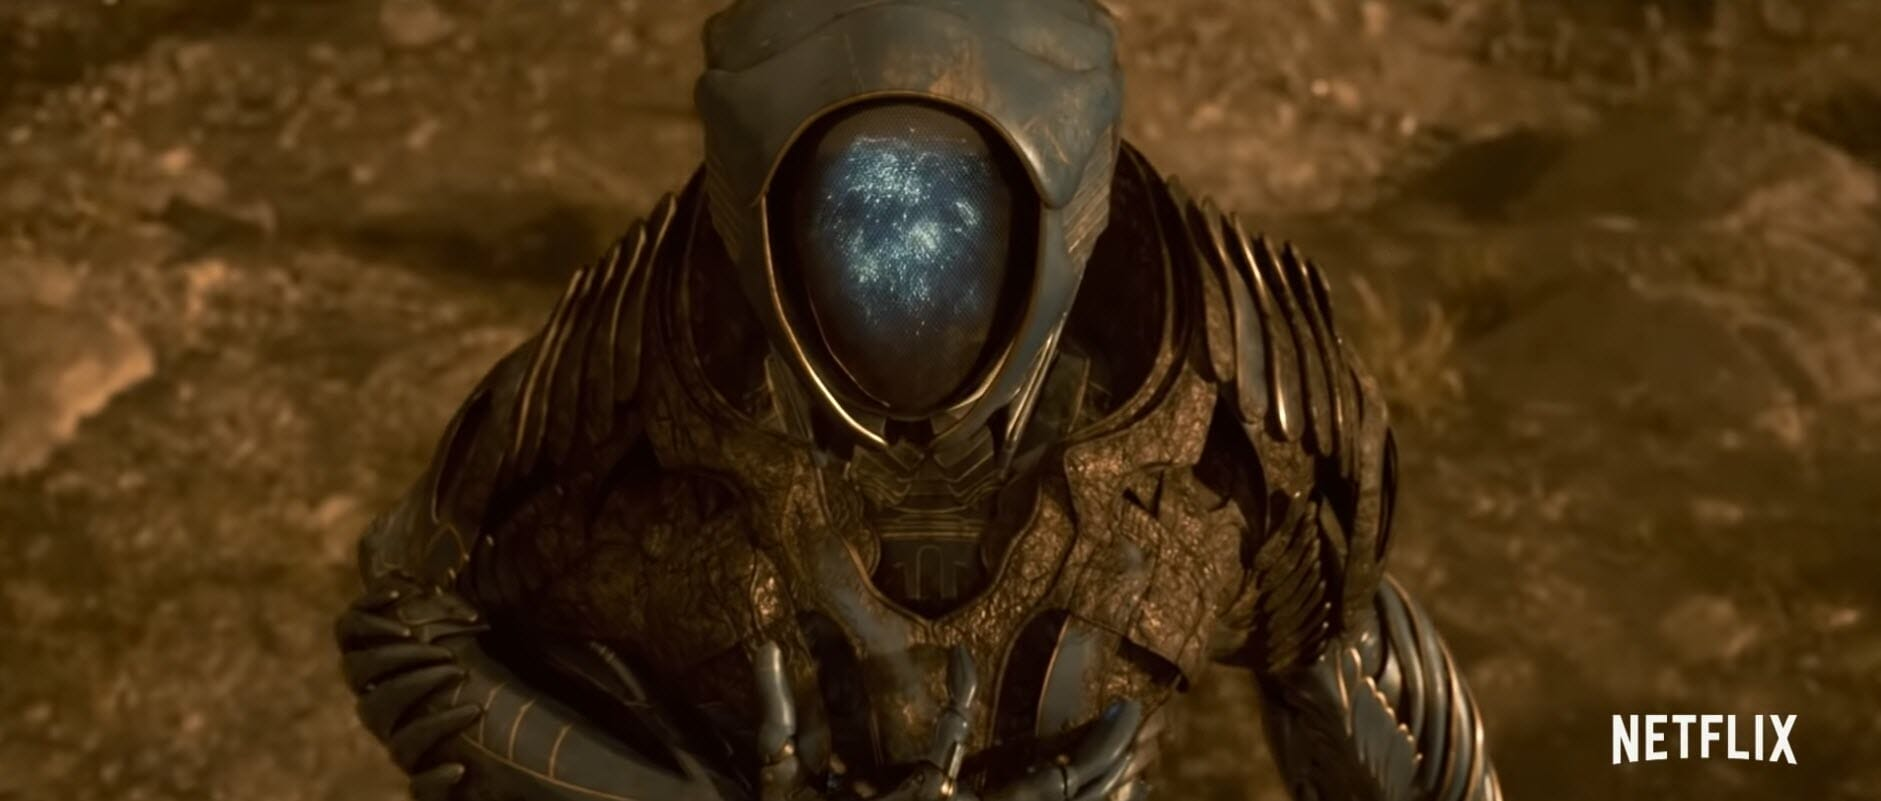 Netflix Gives Us The Lost In Space Season 2 Trailer